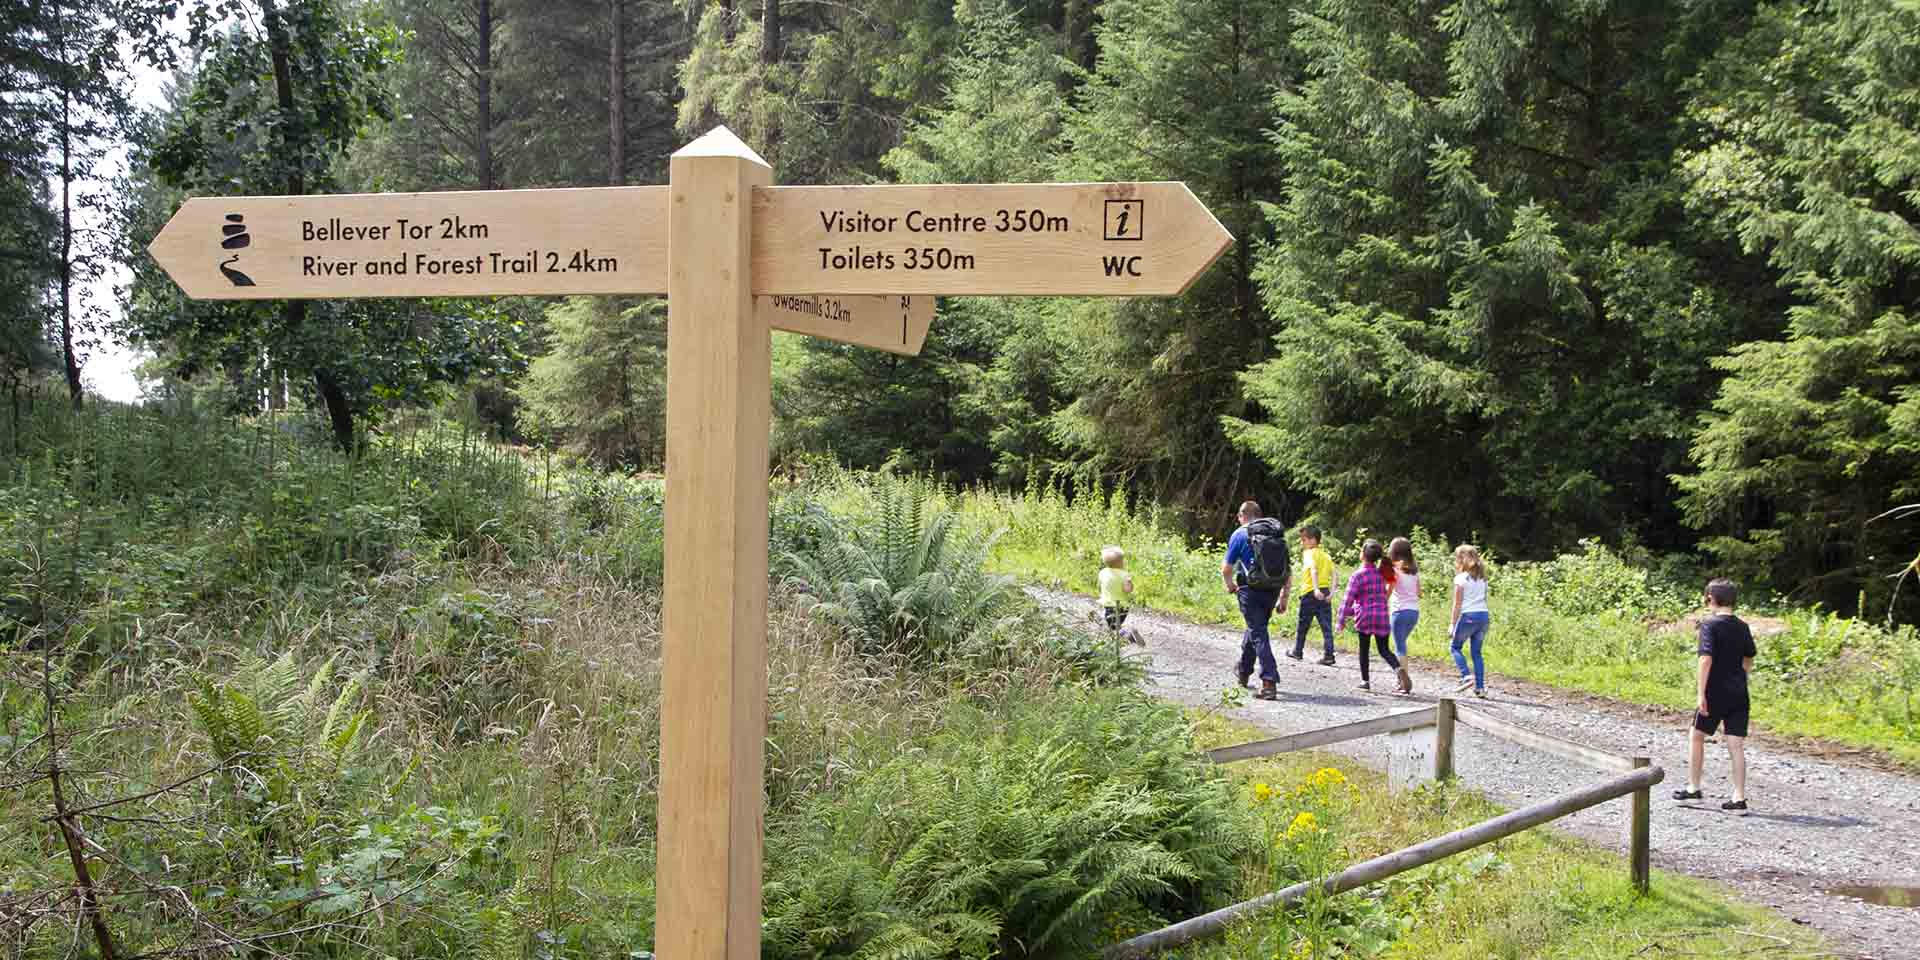 Timber signpost in forest directing to Bellever Tor and National Park Visitor Centre